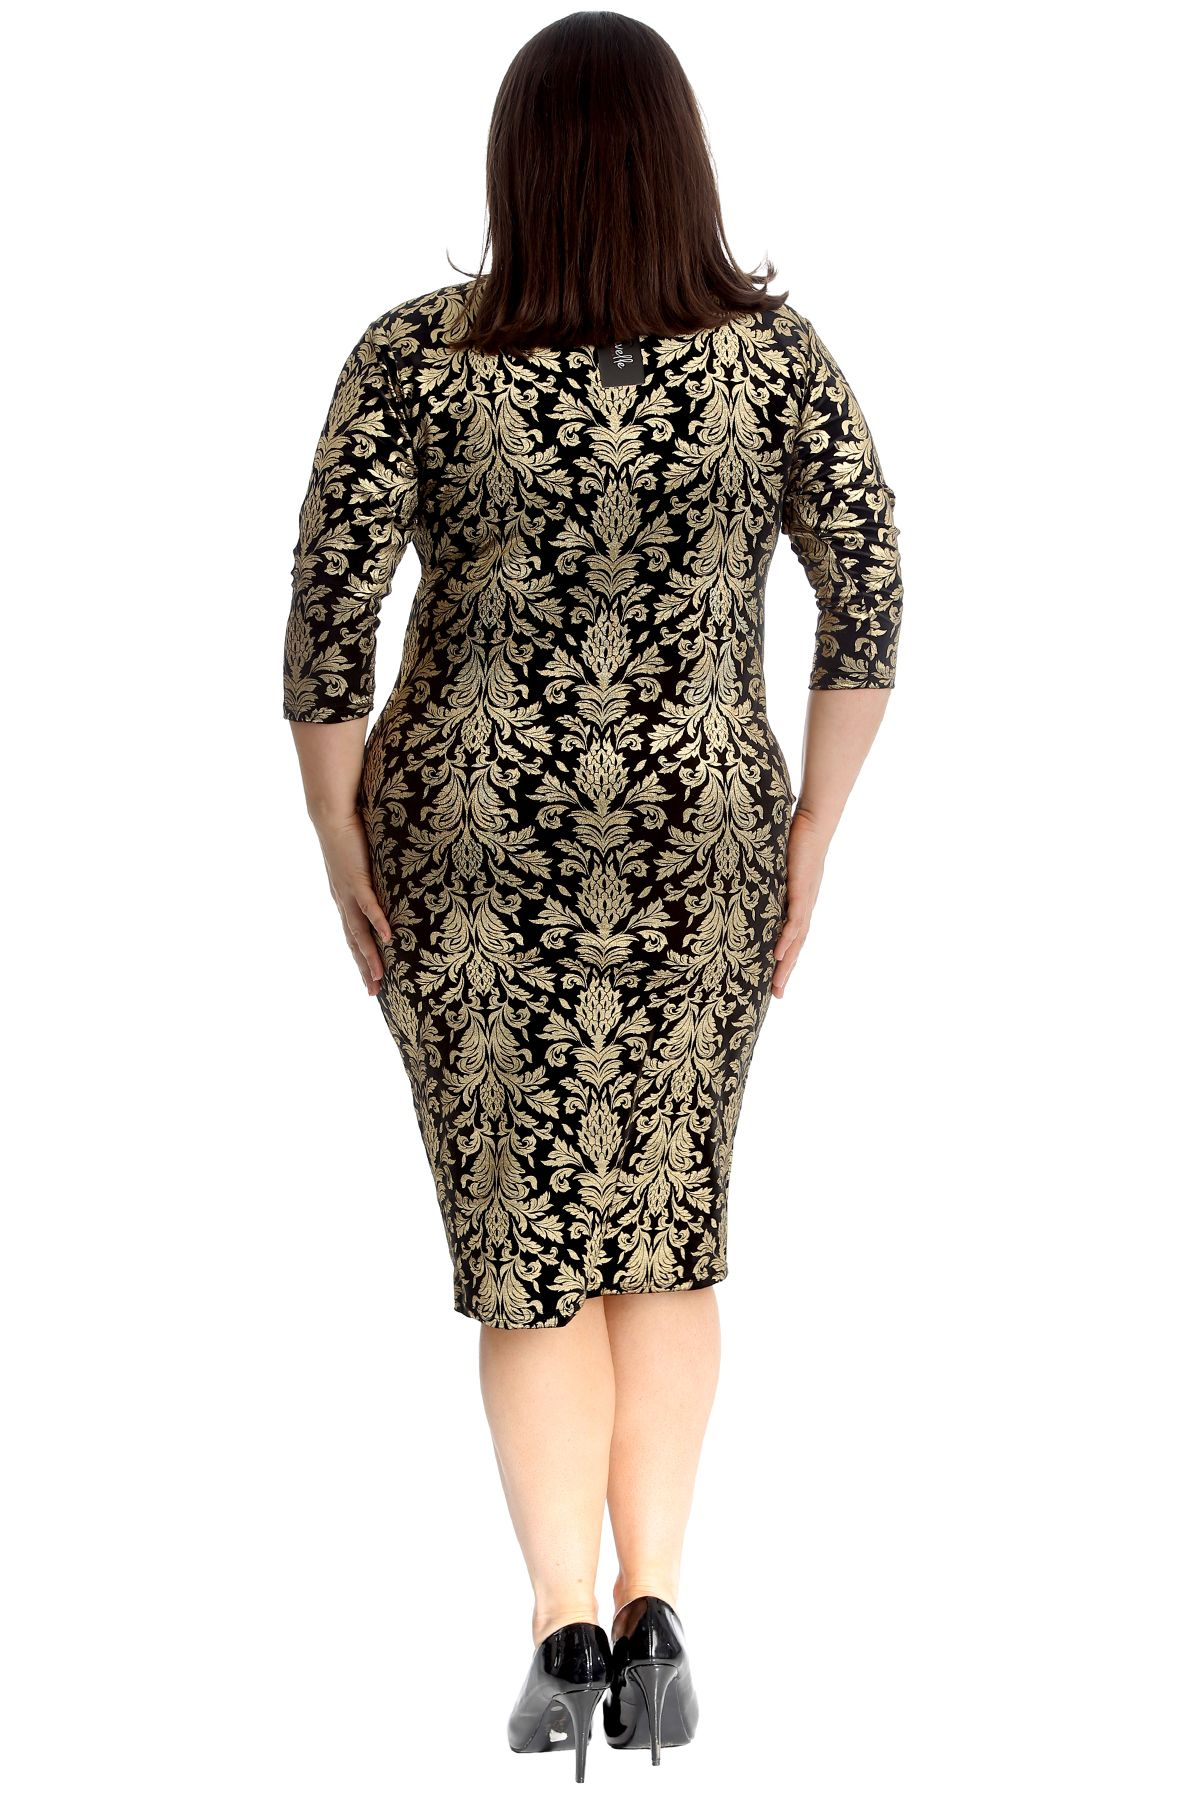 What does a bodycon dress mean